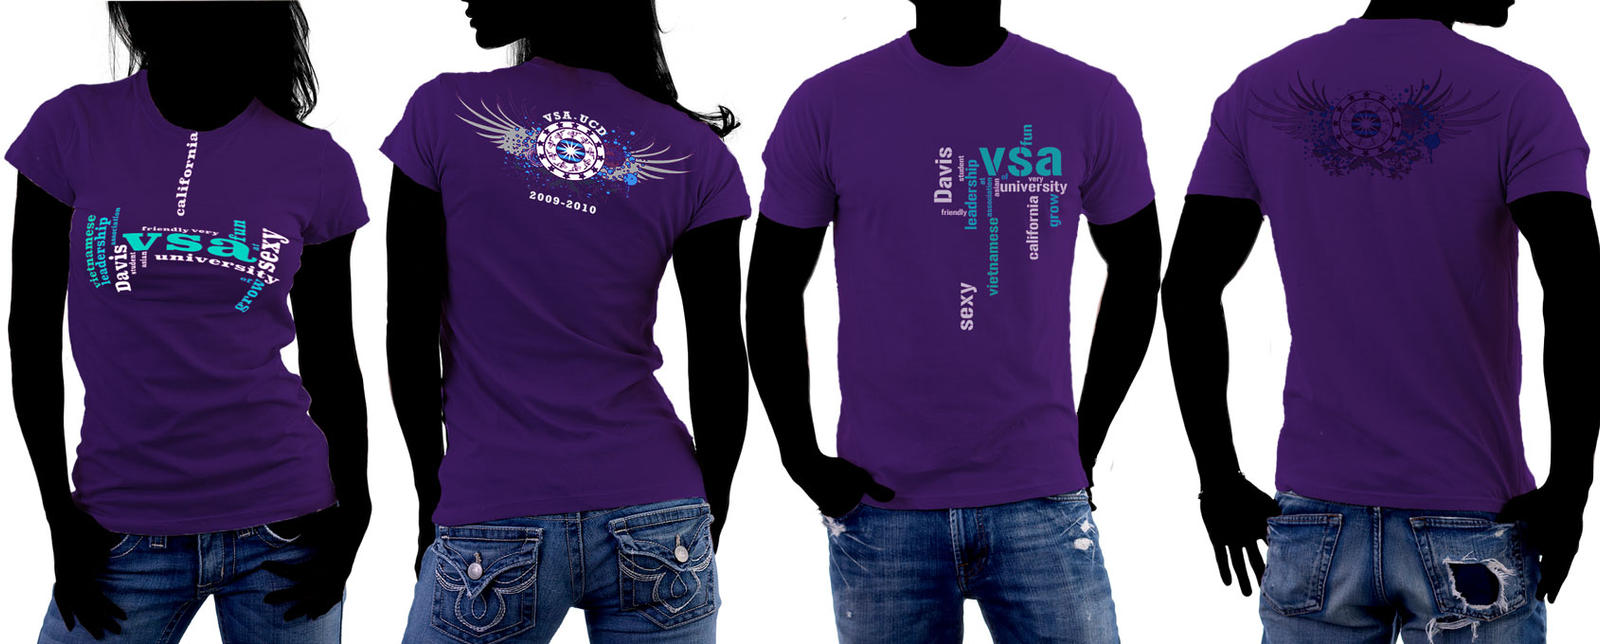 Vsa t shirt prototype set 1 by bitinside on deviantart for How to make a prototype shirt